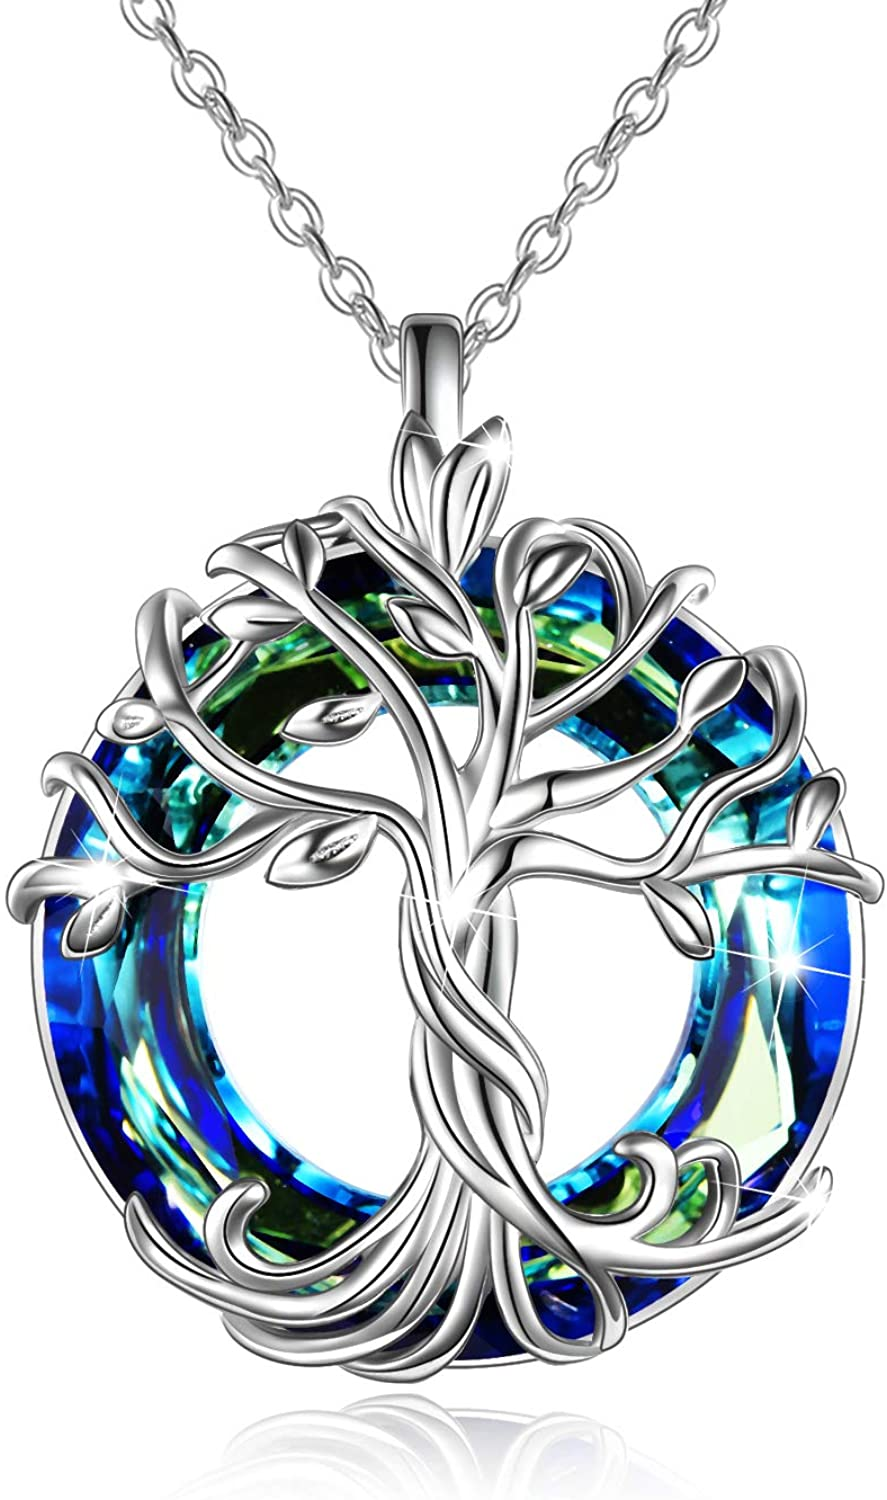 Stunning Solid 925 Sterling Silver Crystal Infinity Pendant Charm Necklace Gift